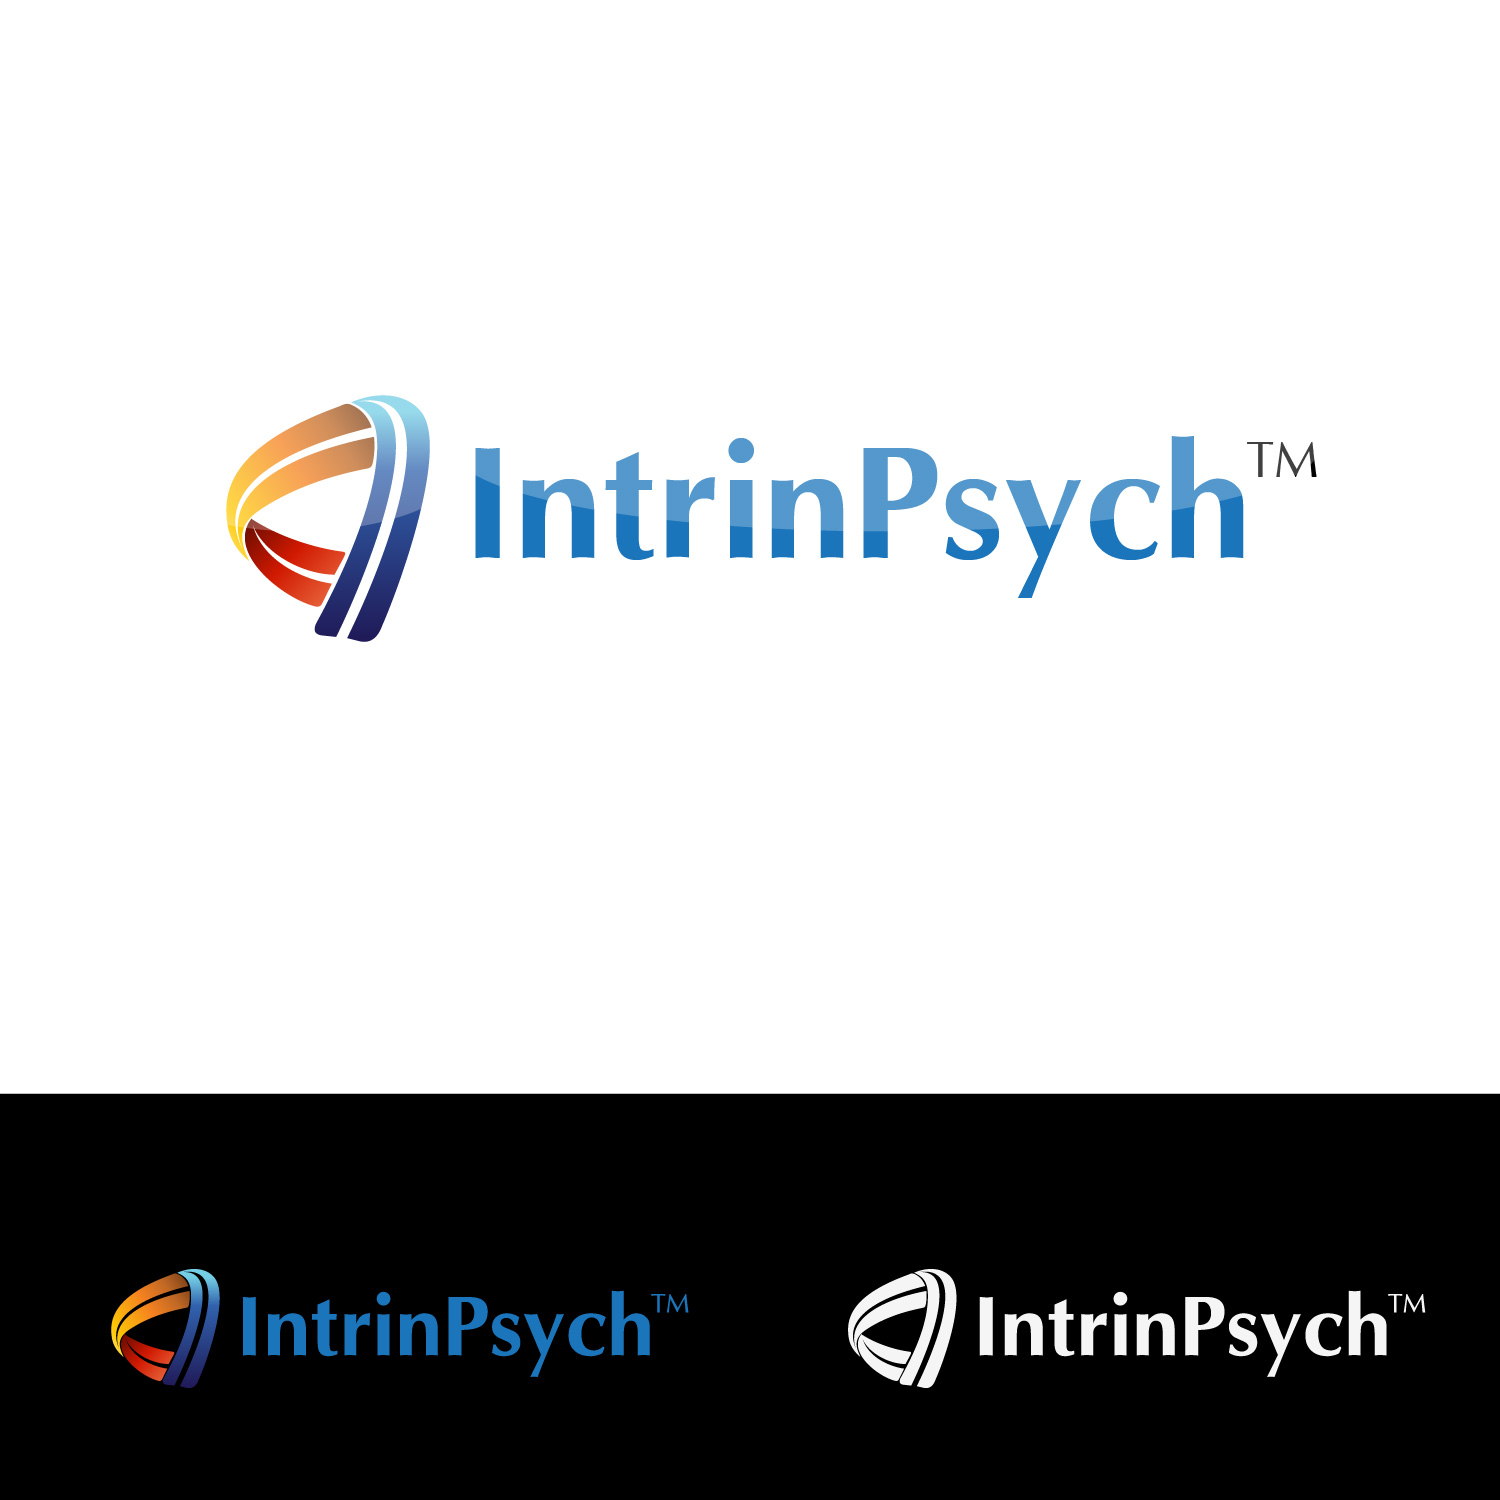 Logo Design by lagalag - Entry No. 74 in the Logo Design Contest New Logo Design for IntrinPsych.